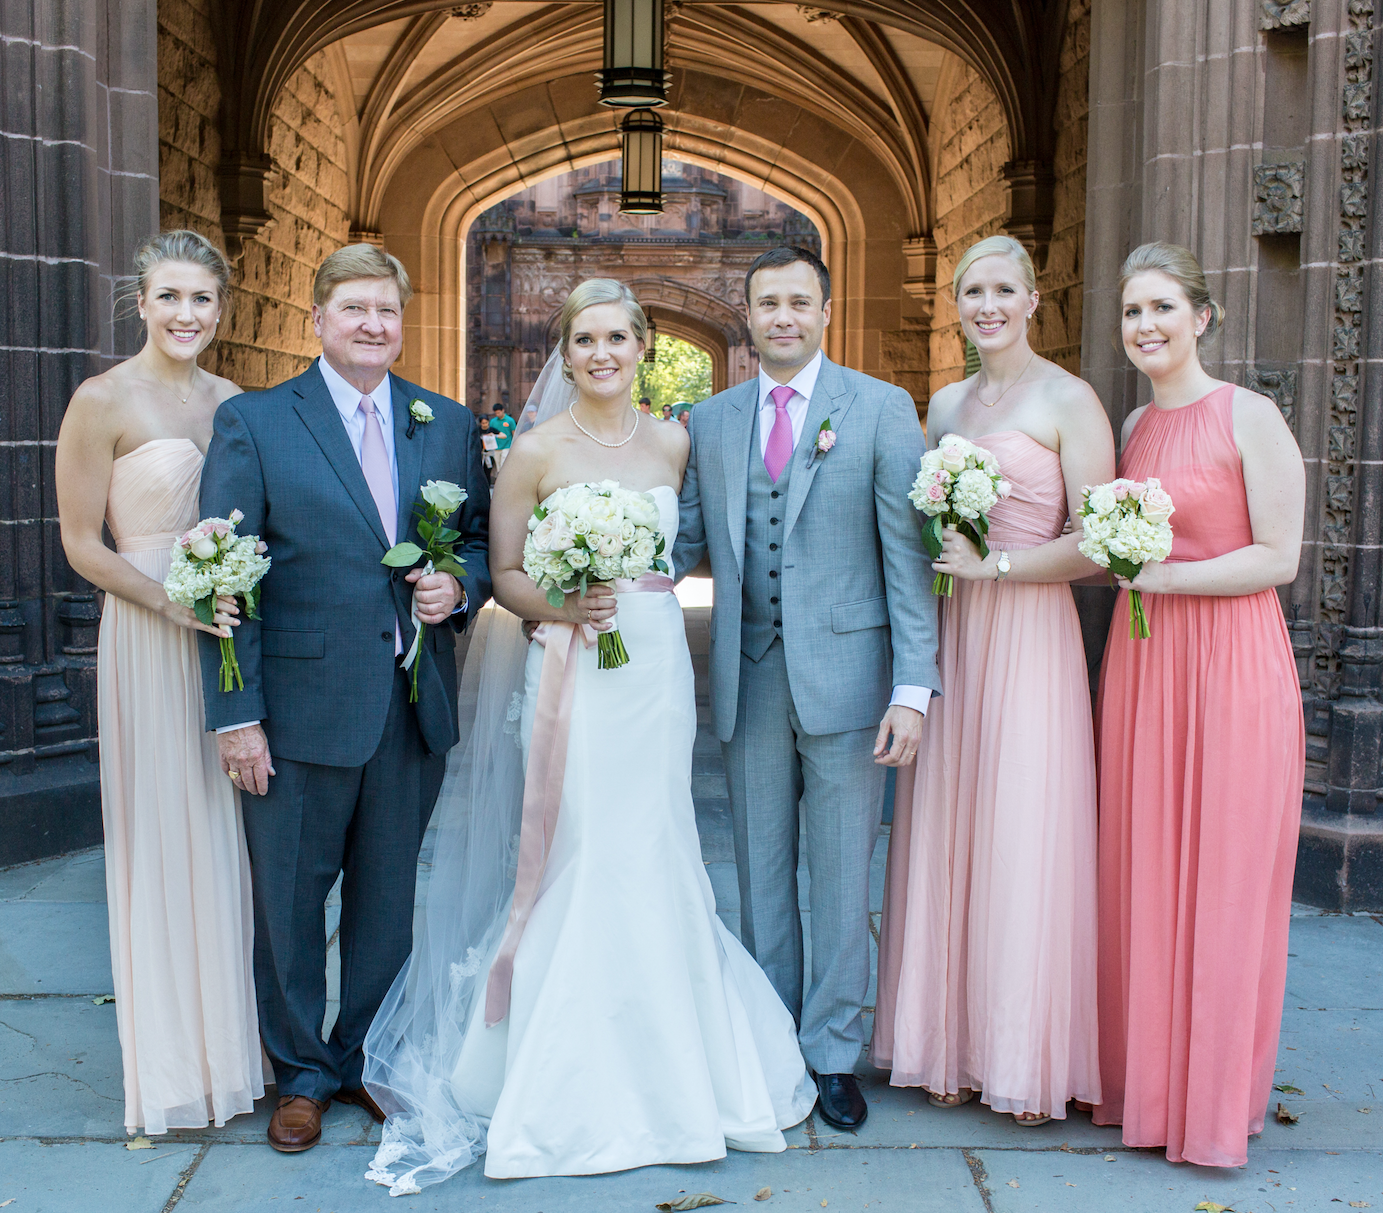 Ray Altenburger's Daughter's Wedding